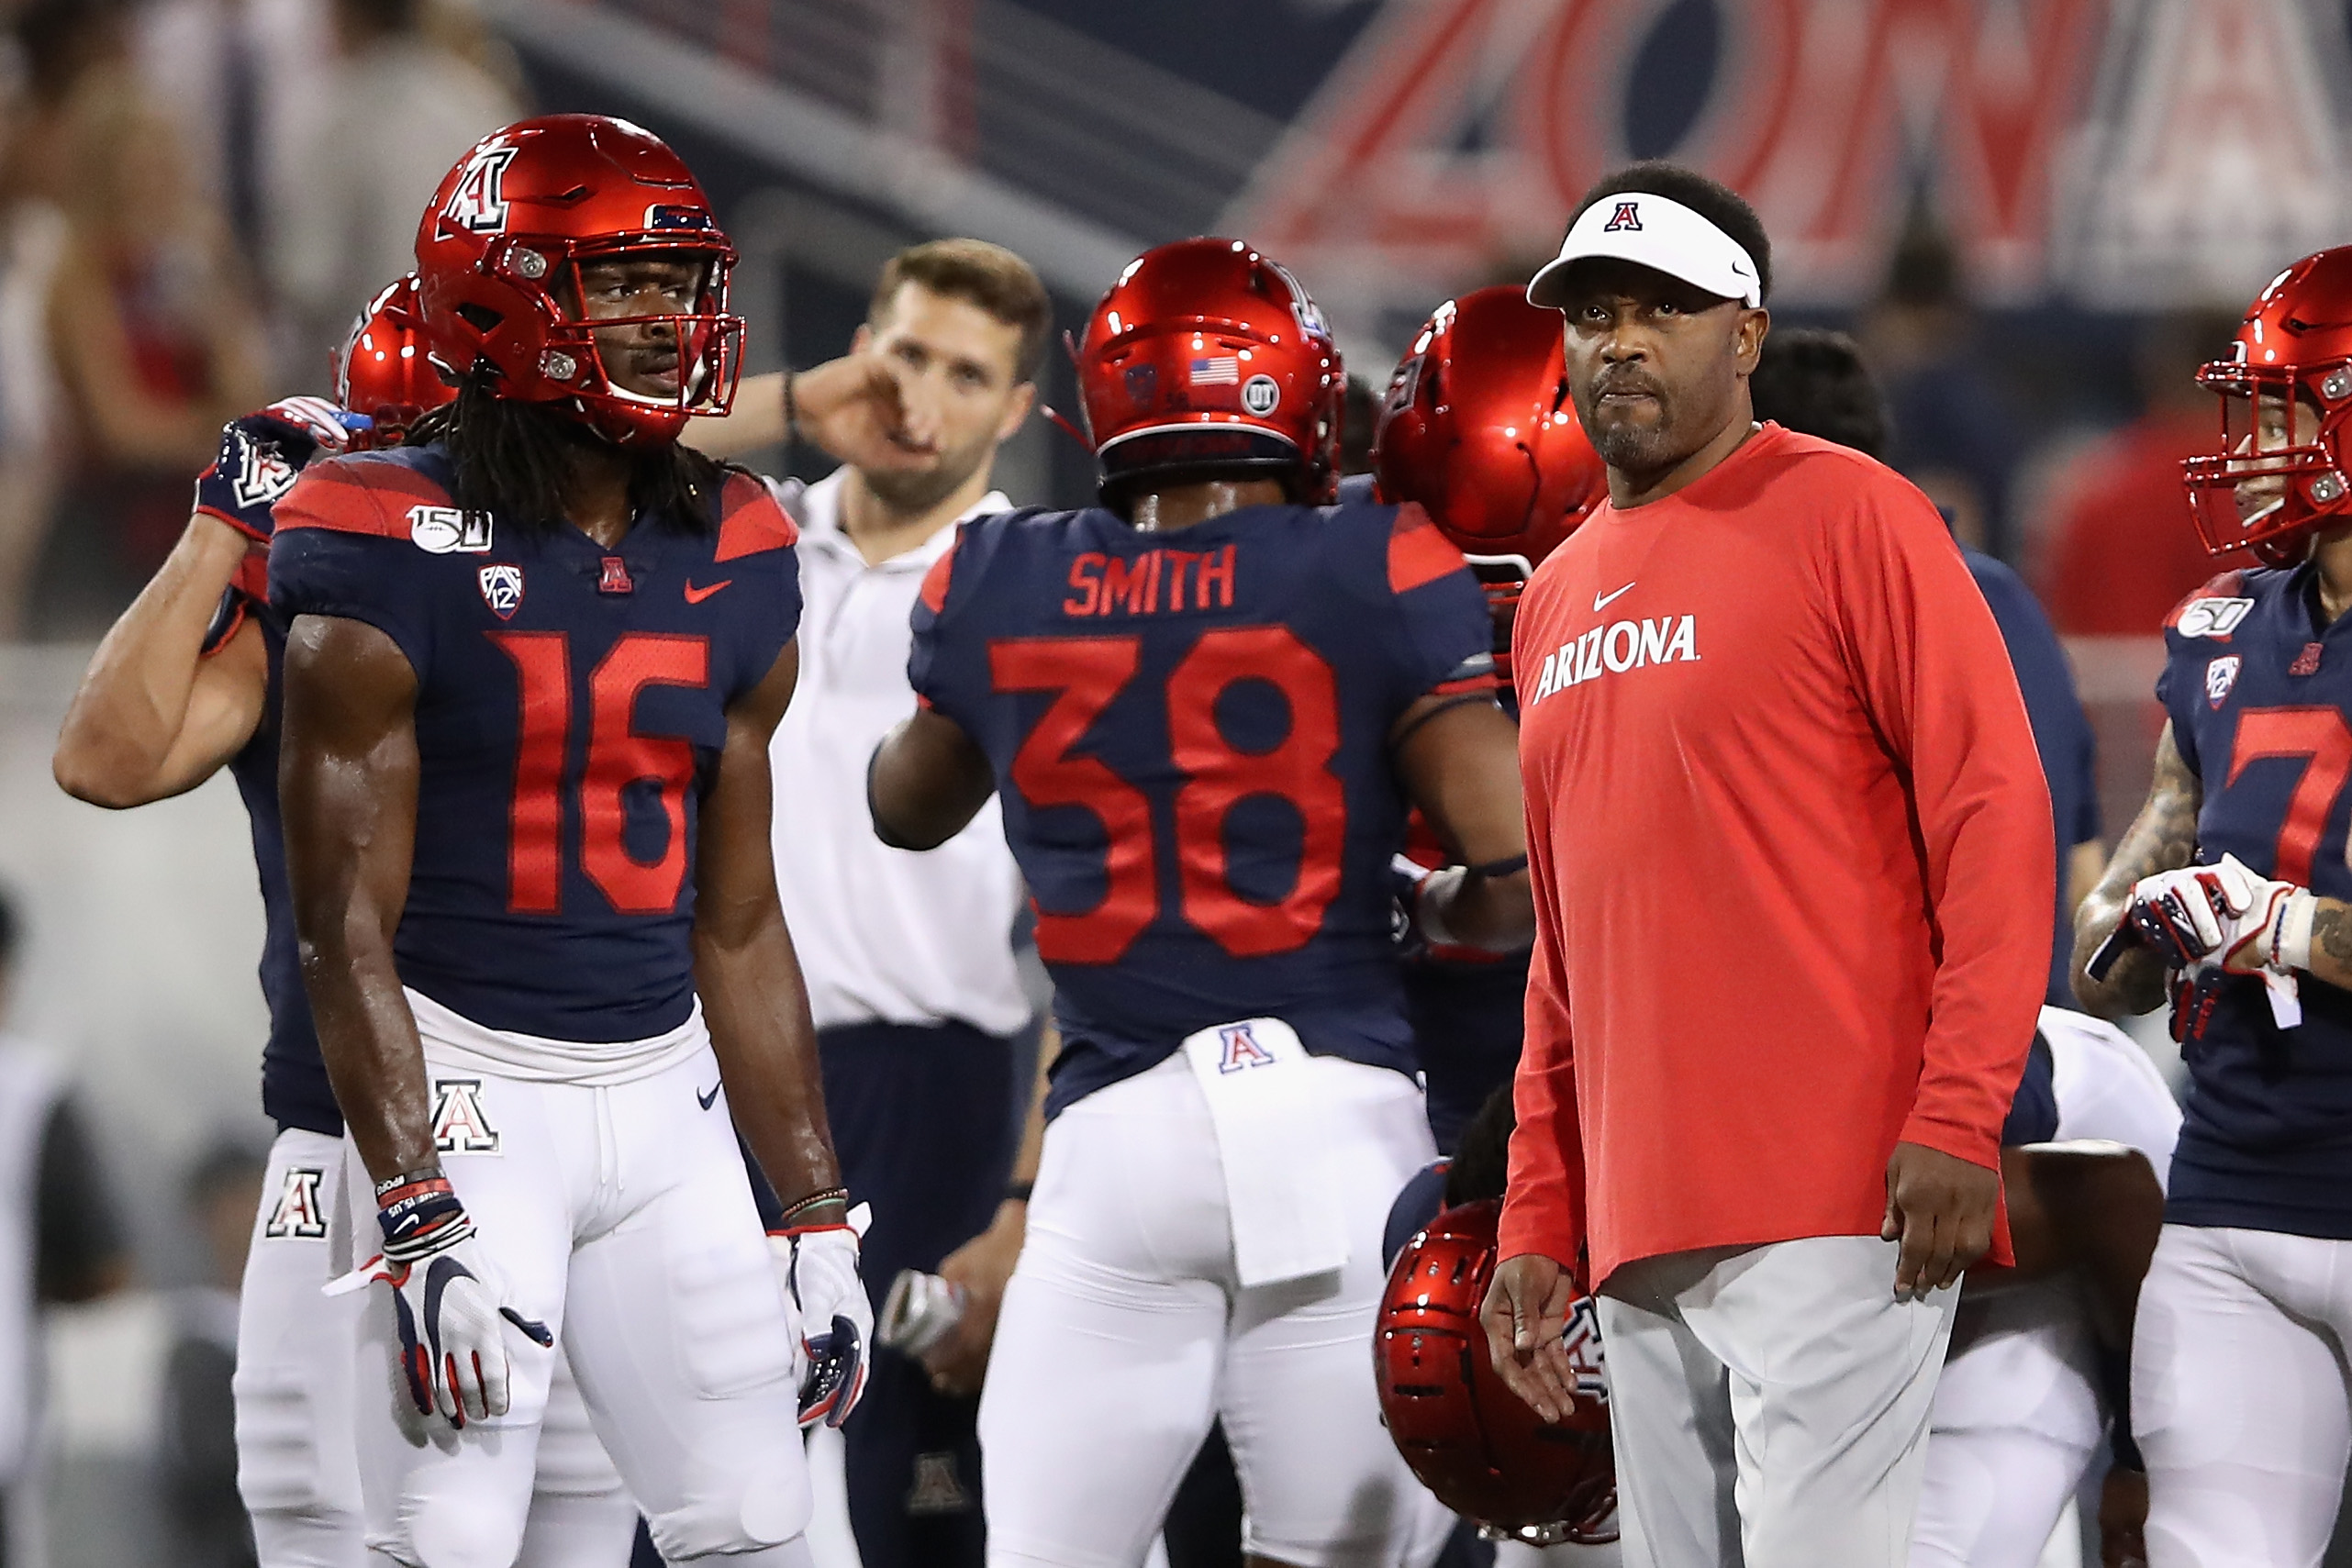 arizona-vs-texas-tech-game-thread-live-stream-tv-channel-score-updates-odds-radio-chat